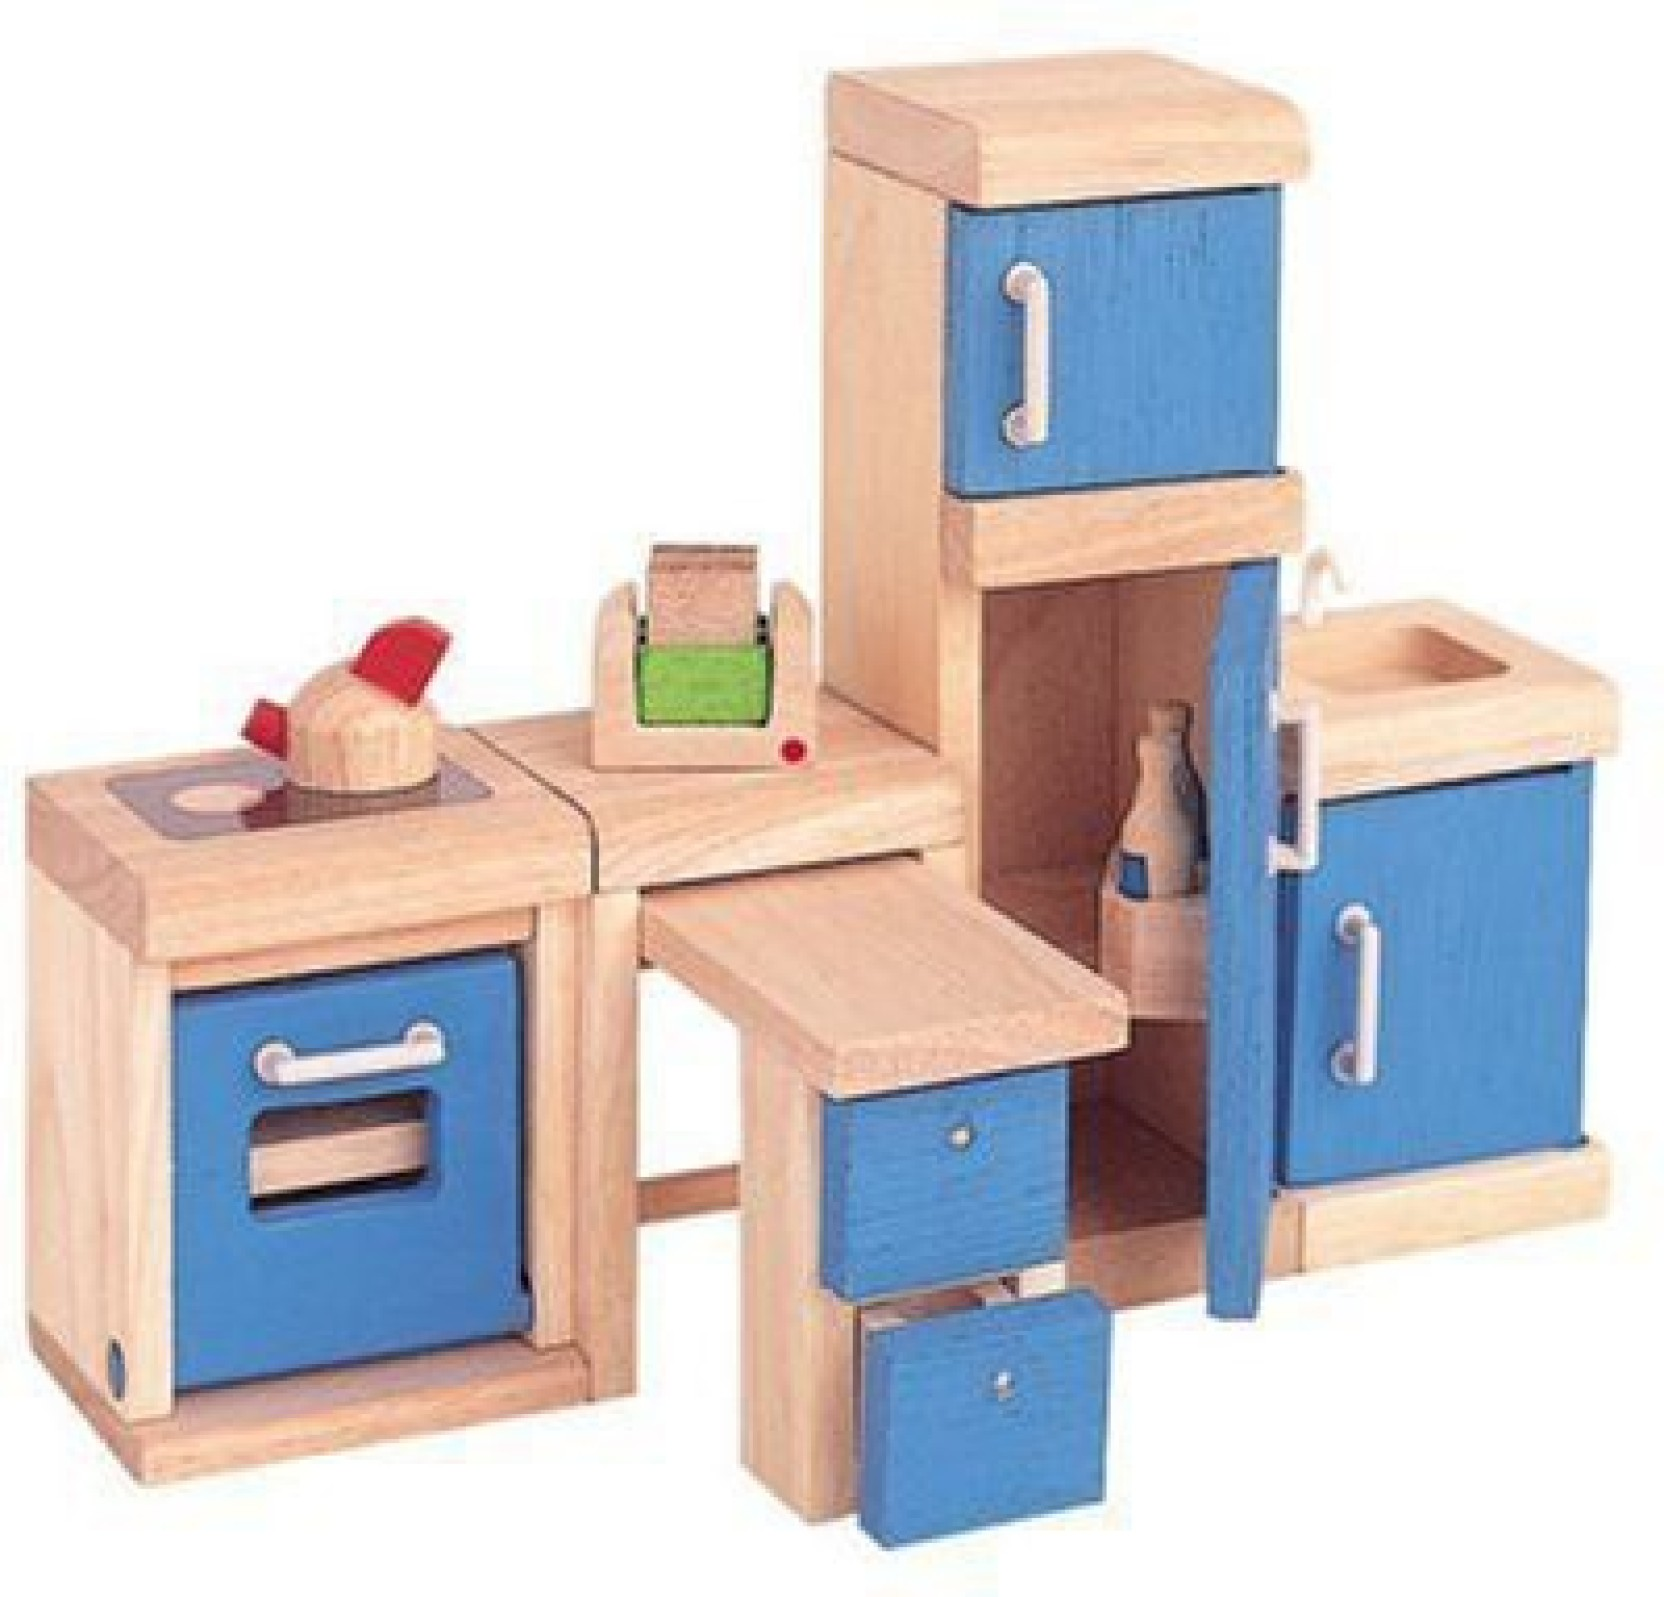 Plan toys plan toy doll house kitchen neo style by multicolor